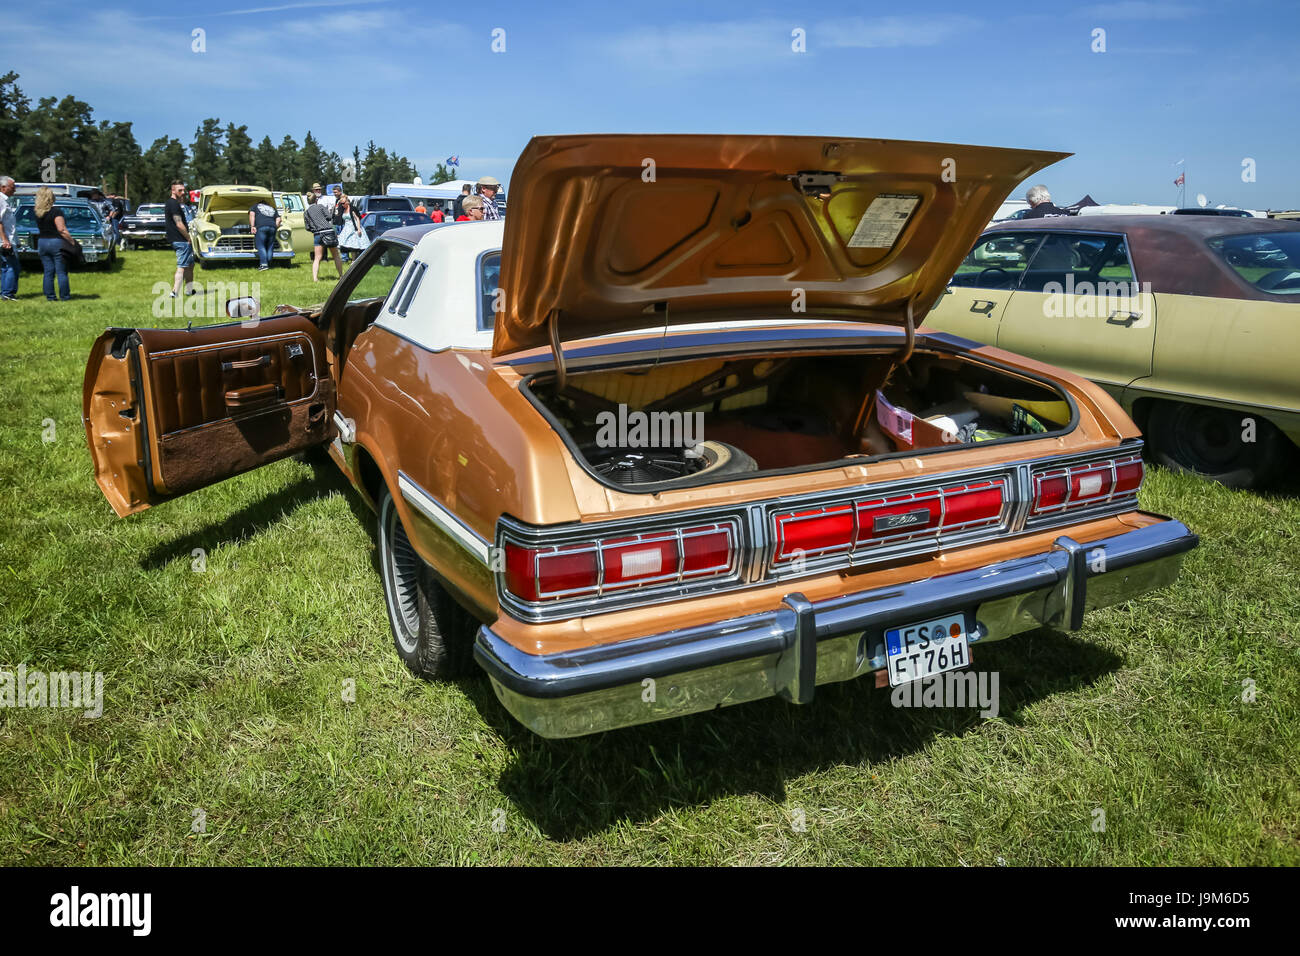 NANDLSTADT, GERMANY - MAY 6, 2017 : People sightseeing american automobile Ford Elite displayed at the US Car meeting - Stock Image